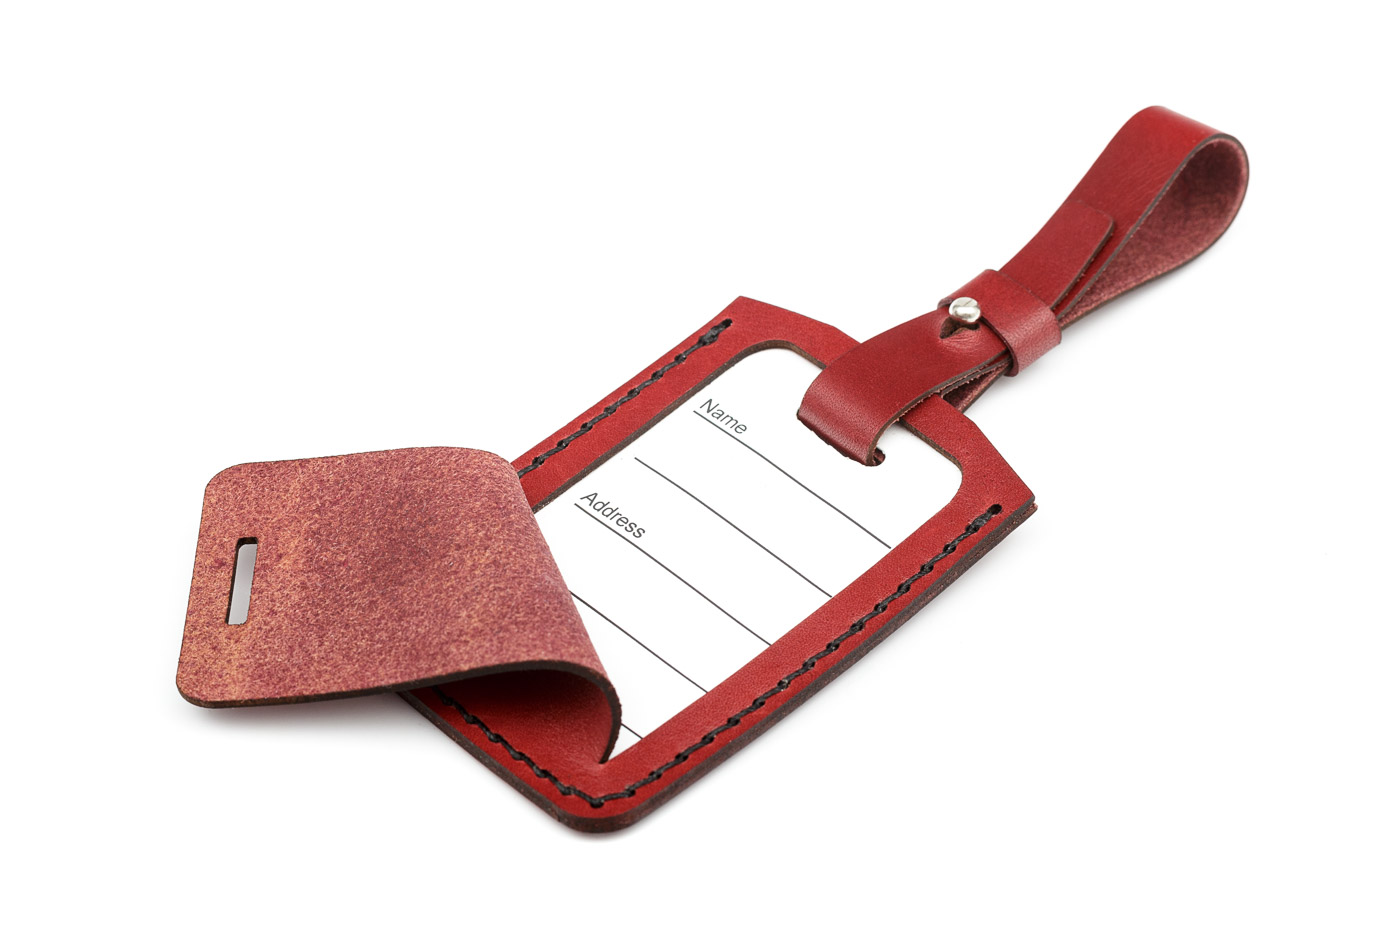 bordeaux leather luggage tag